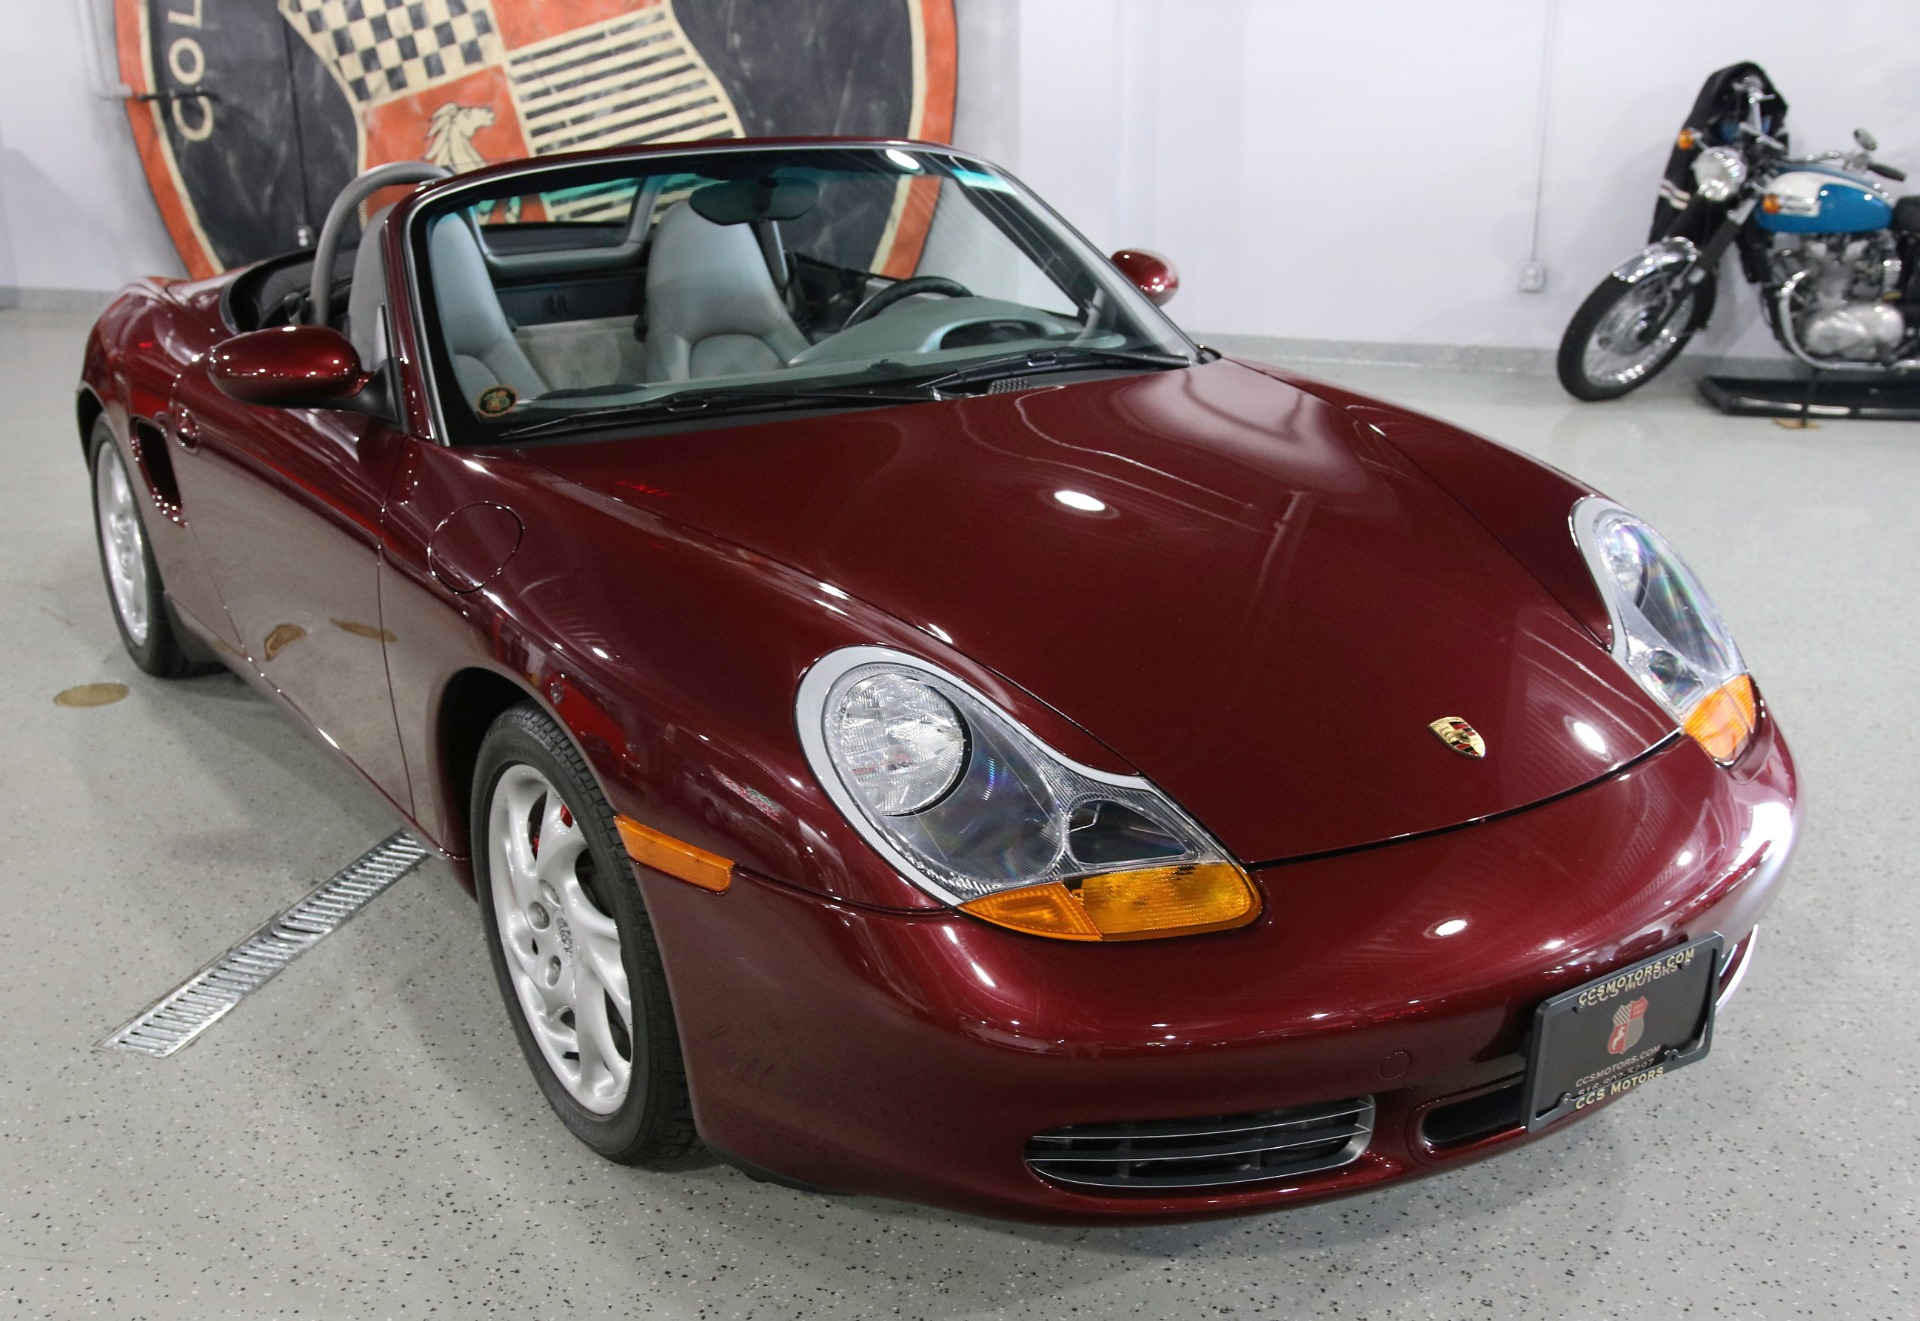 2000 porsche boxster s 6 speed stock 1210x for sale near oyster bay ny ny porsche dealer. Black Bedroom Furniture Sets. Home Design Ideas